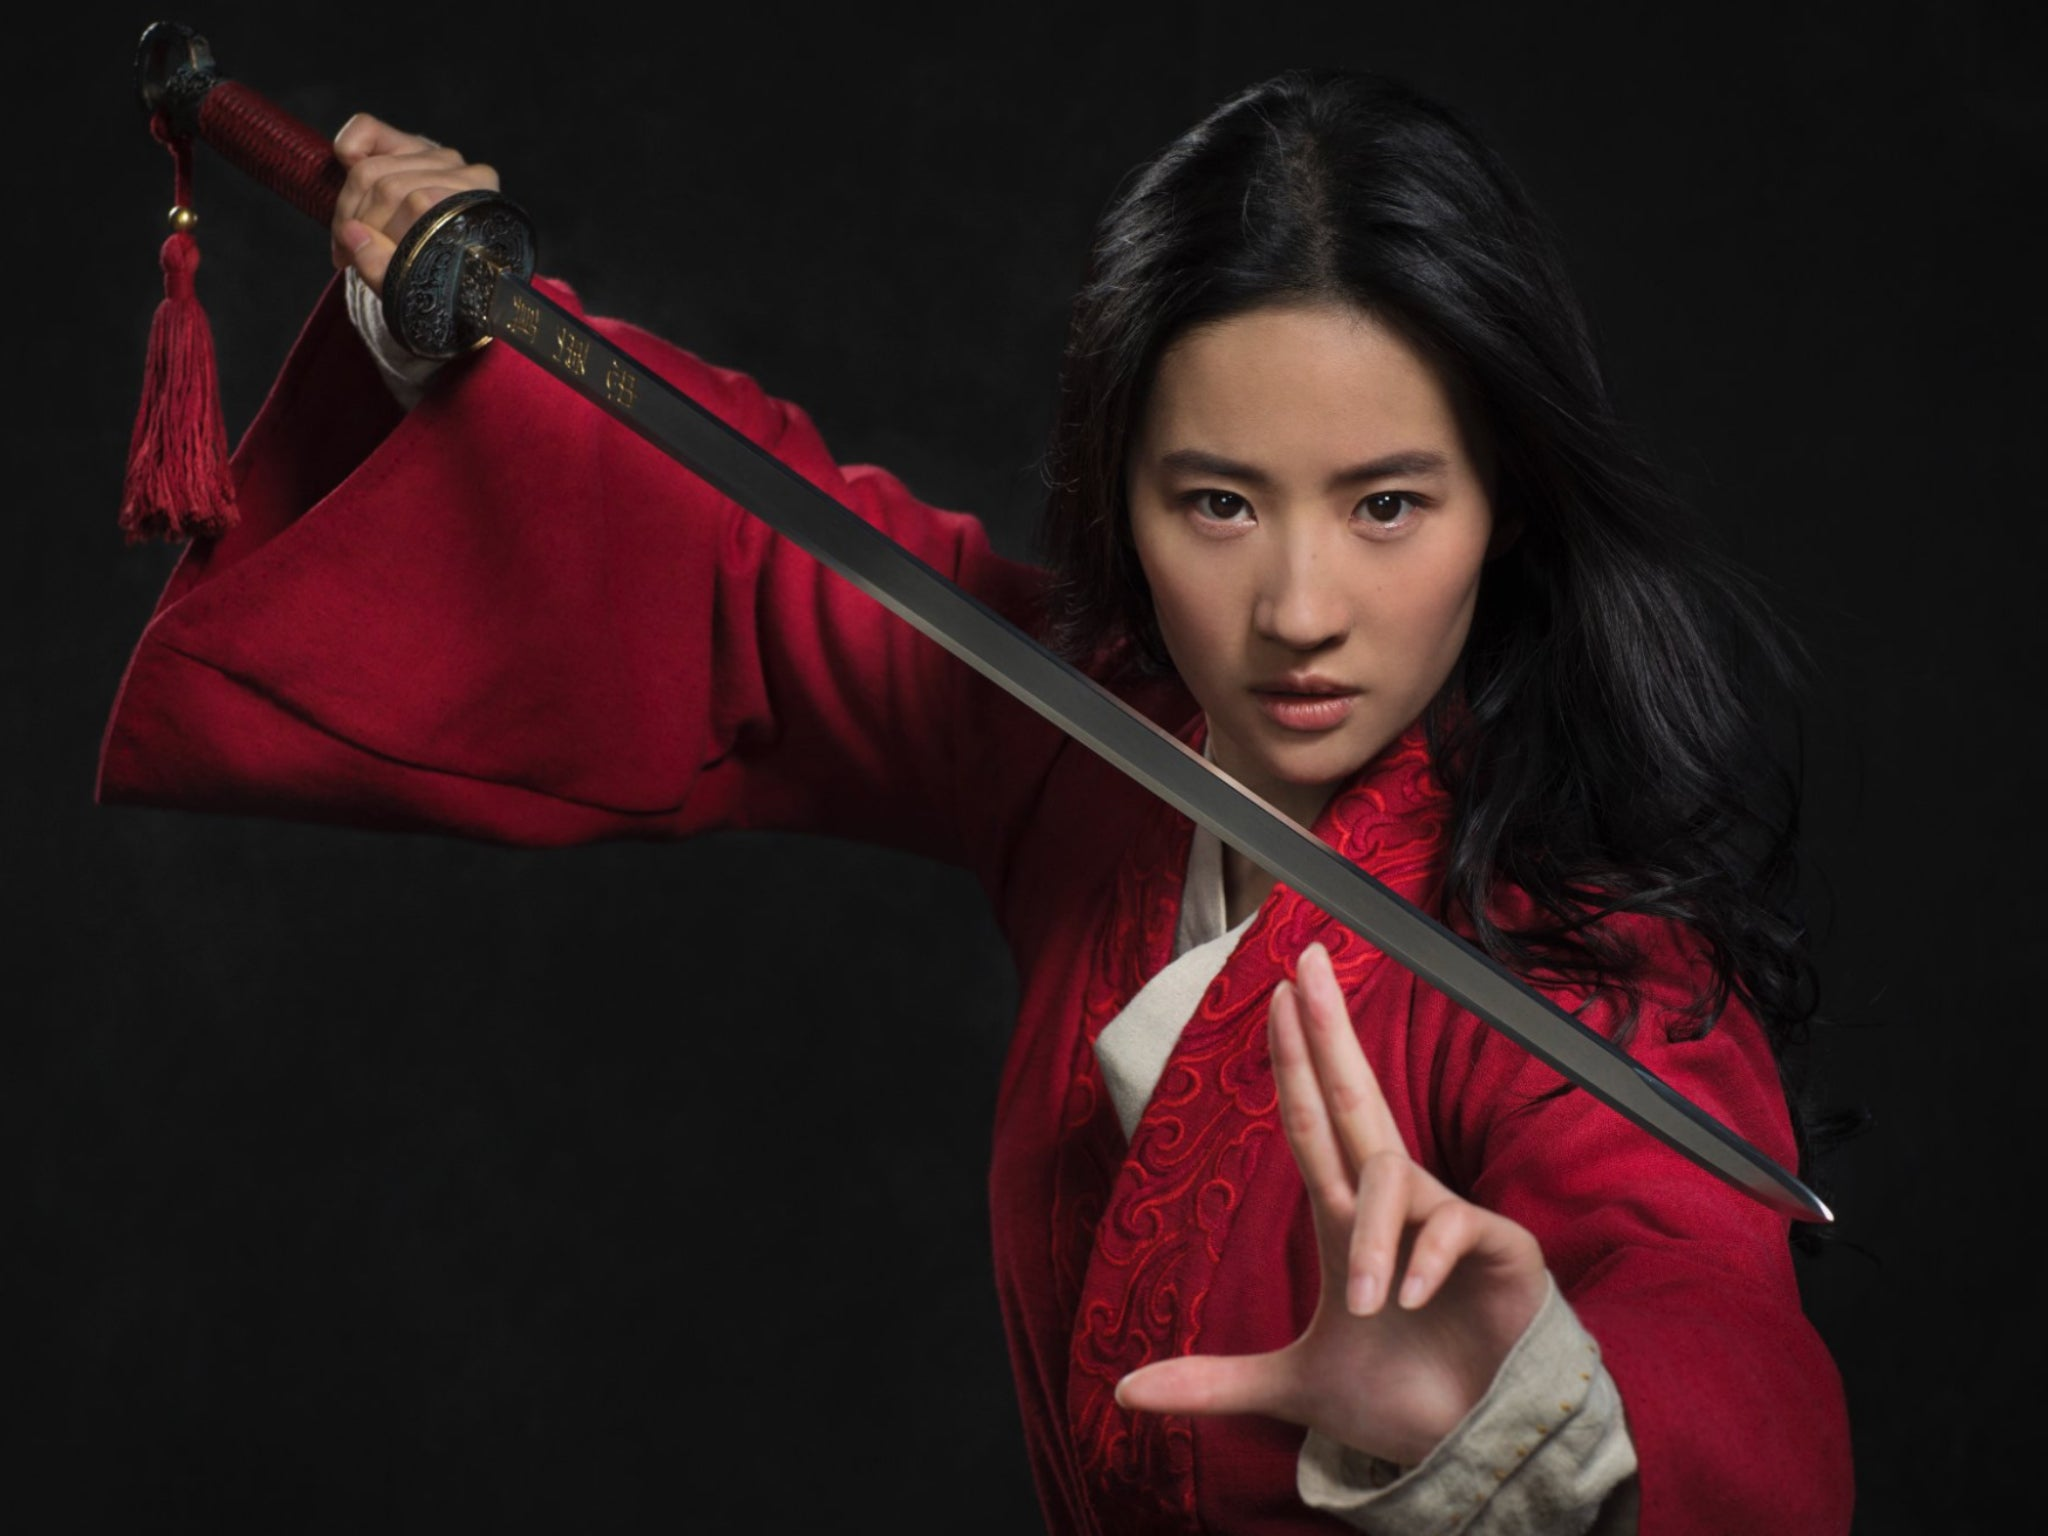 Mulan live-action remake faces boycott after star Liu Yifei shows support for Hong Kong police amid national protests